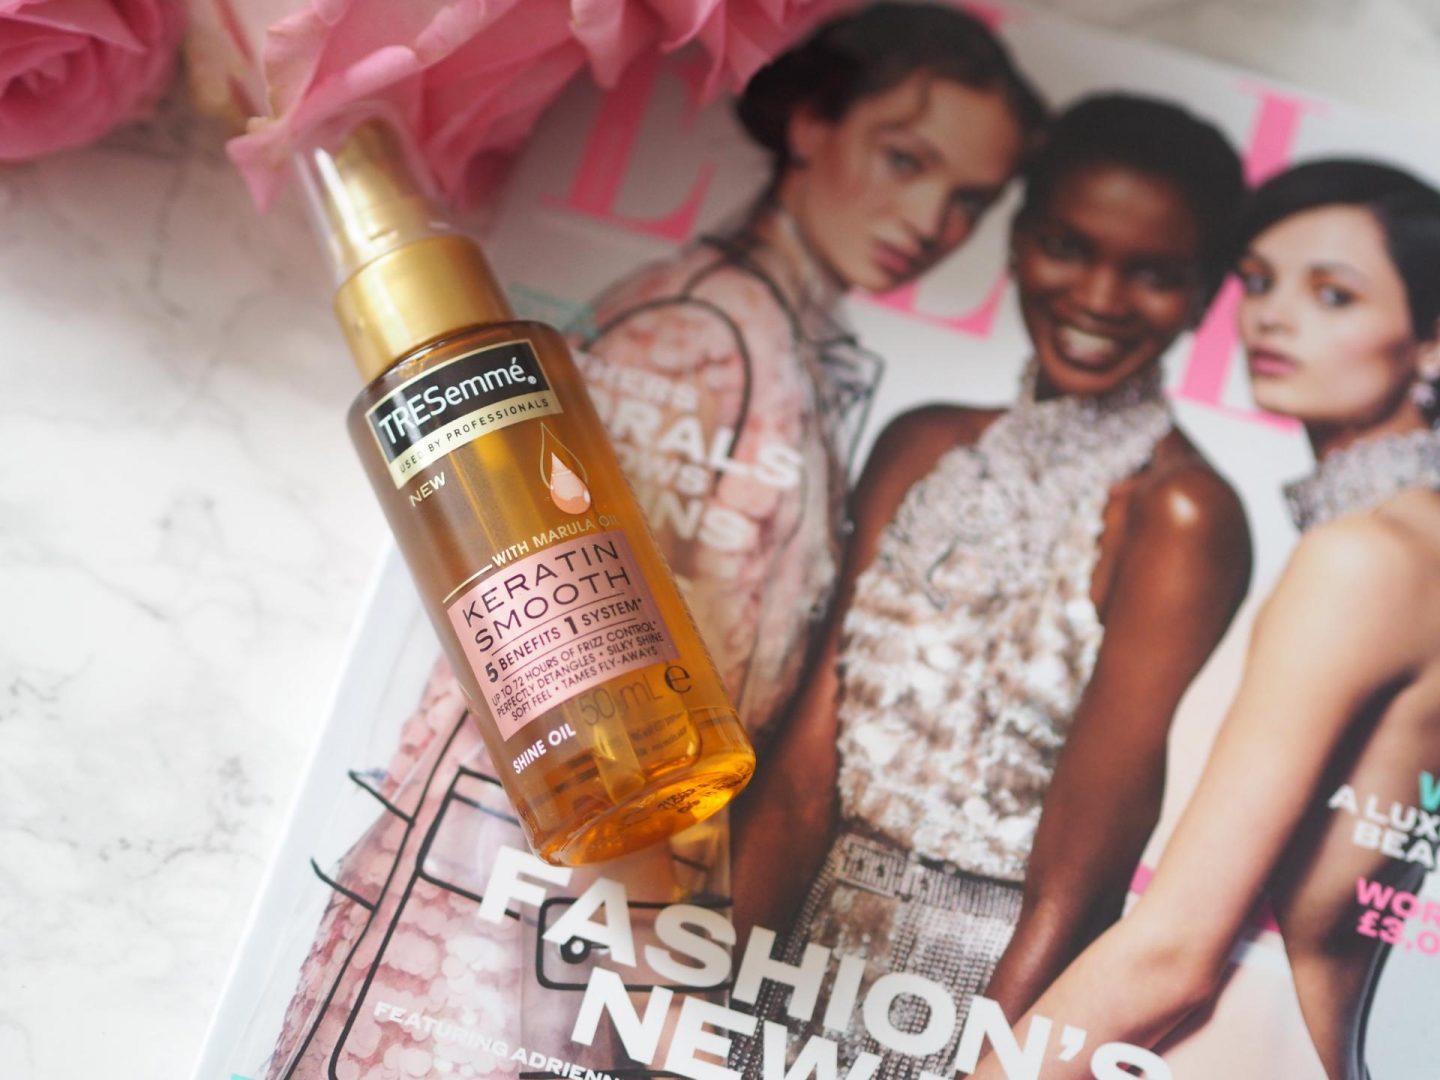 Budget Friendly Haircare - Product Tresemme Keratin Smooth Shine Oil